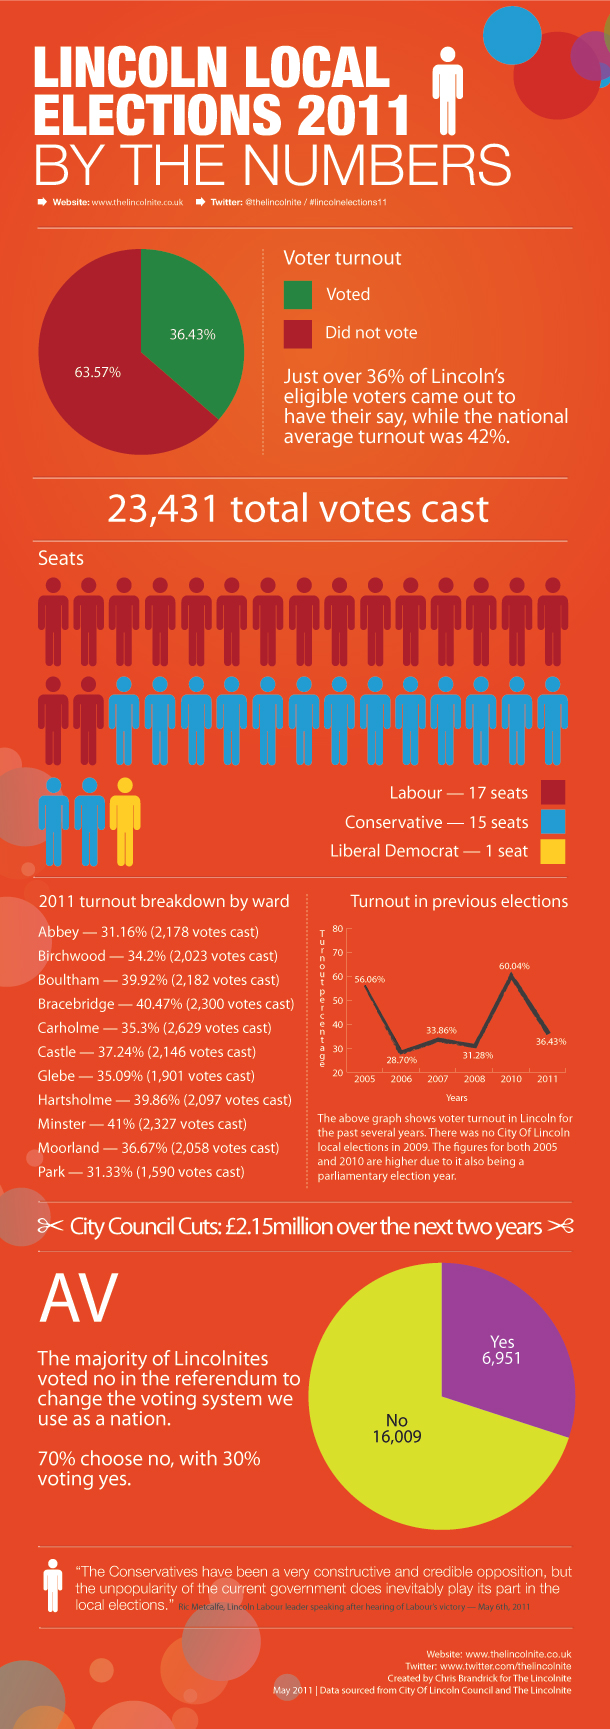 Lincoln Local Elections 2011 Infographic